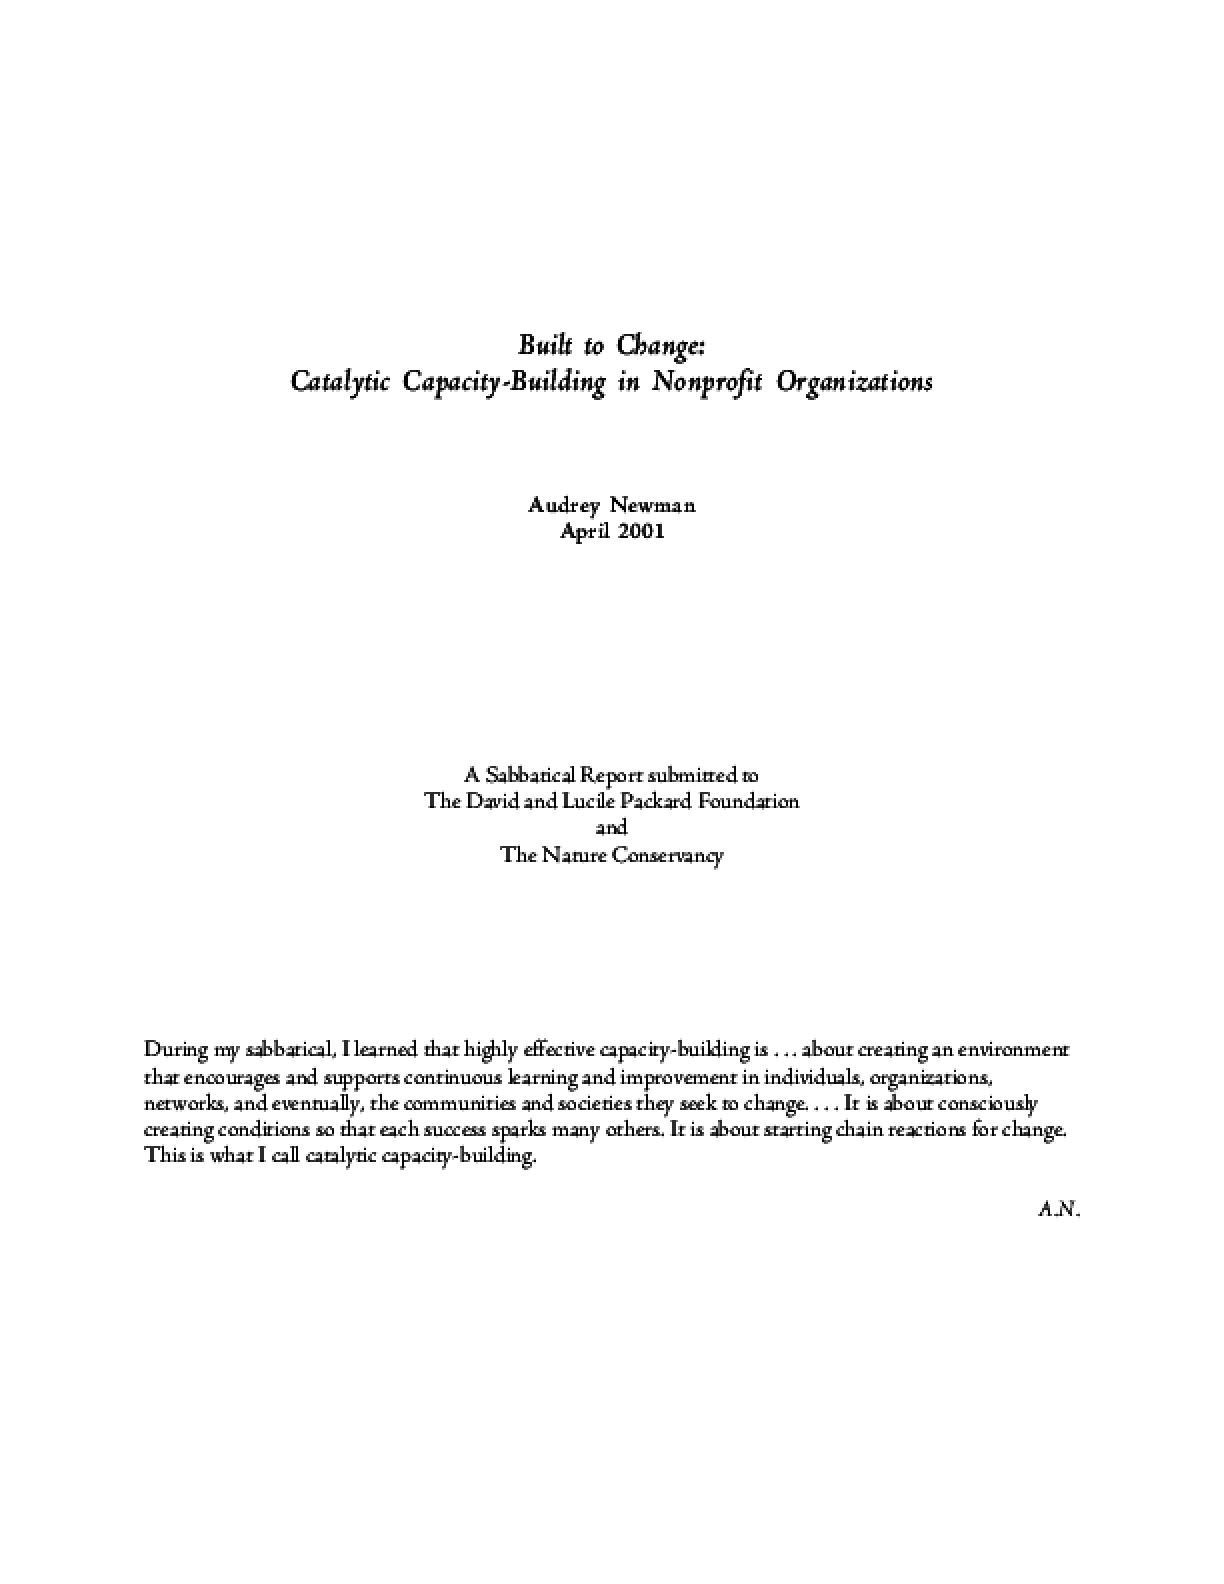 Built to Change: Catalytic Capacity-Building in Nonprofit Organizations